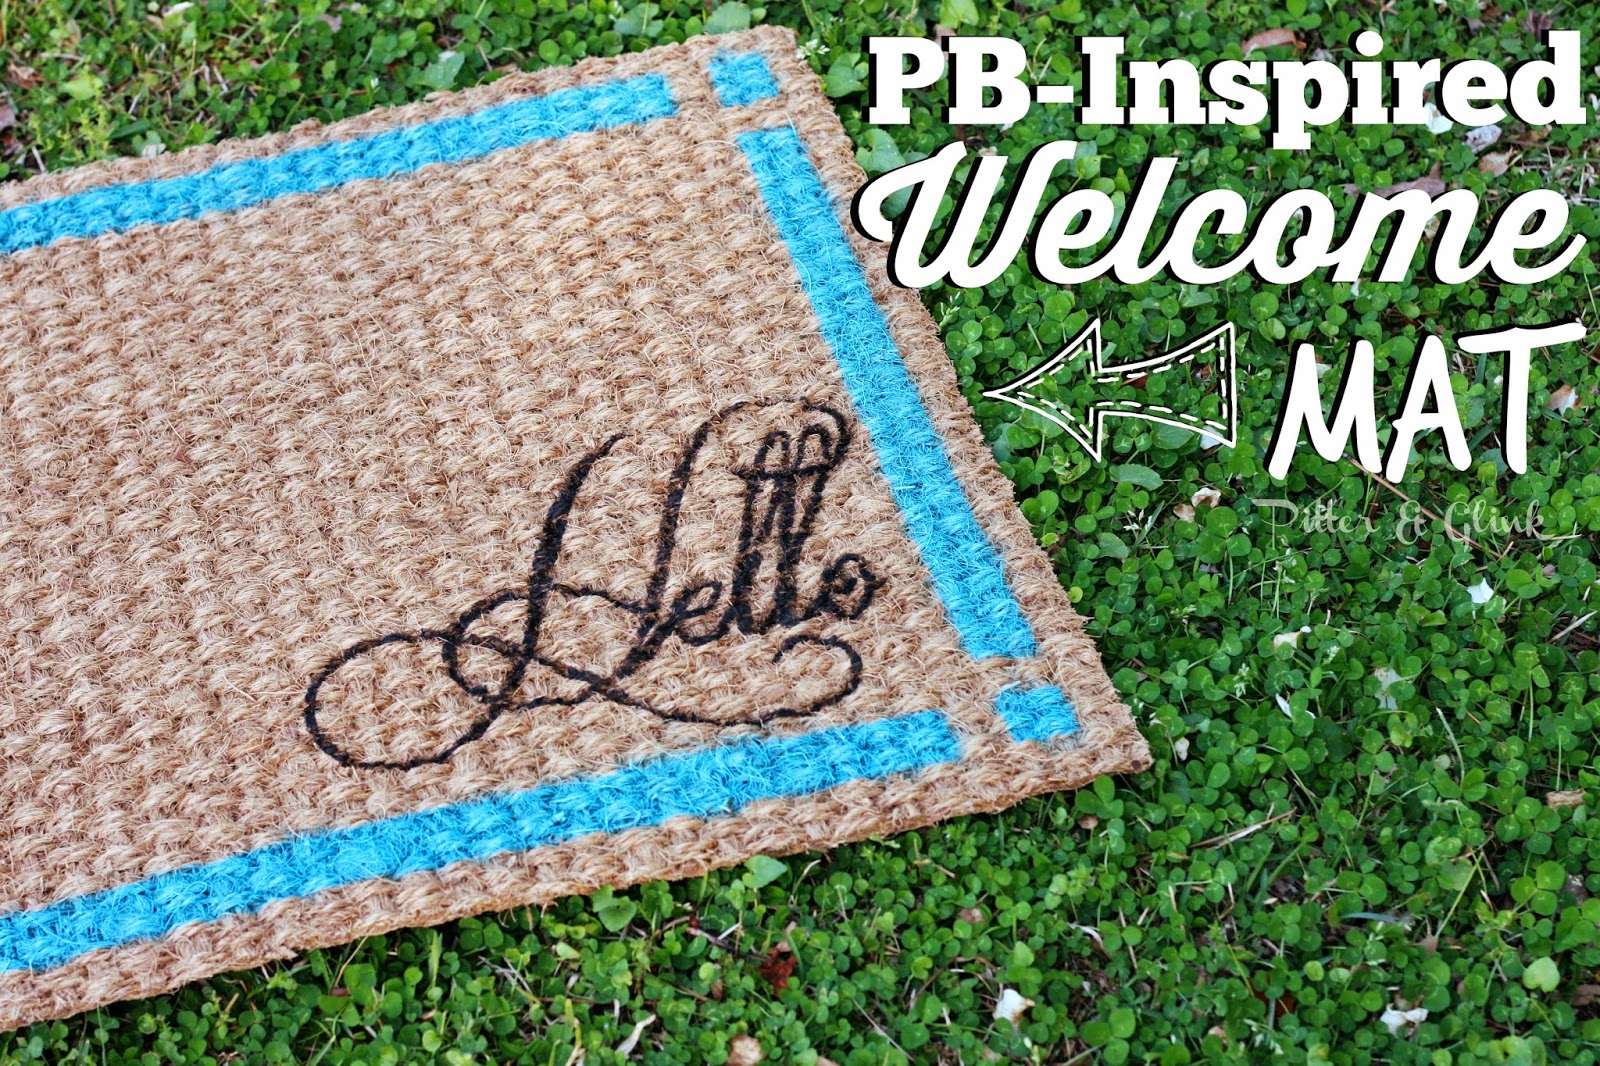 Stencil an IKEA rug to create a PB Inspired Doormat! #ikeahack www.PitterandGlink.com